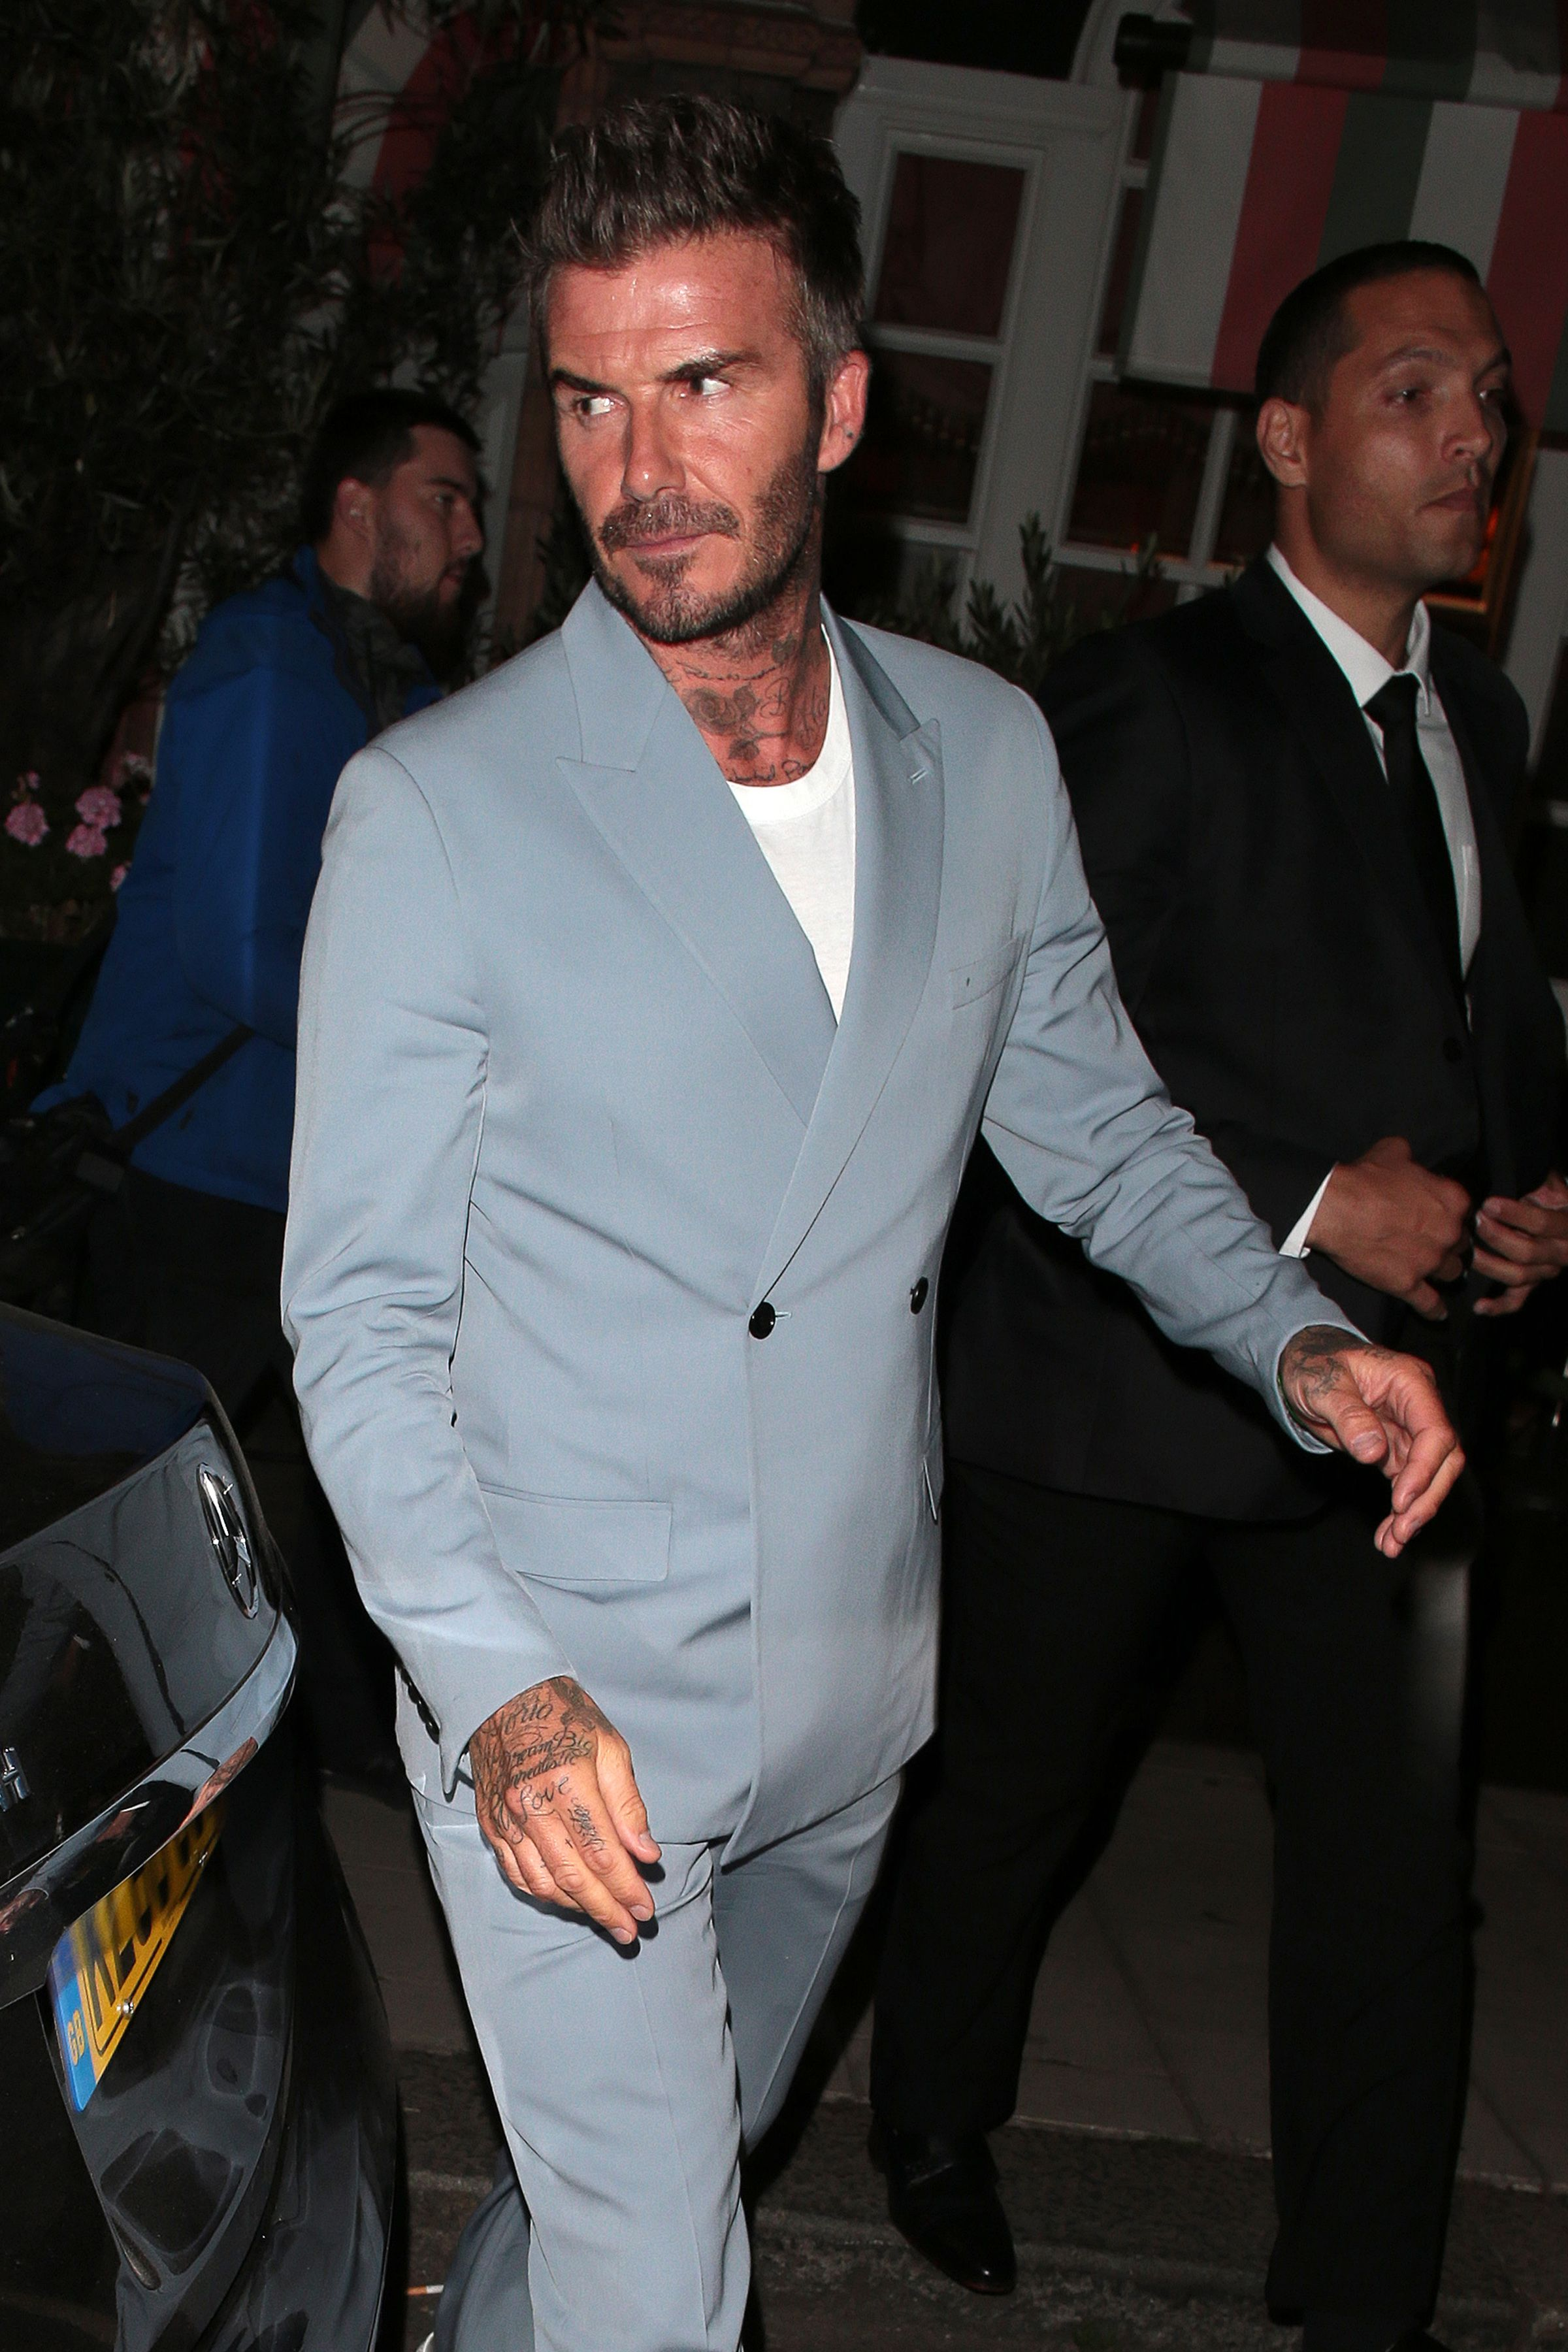 David Beckham Is Dressed To Party Like It's 1989